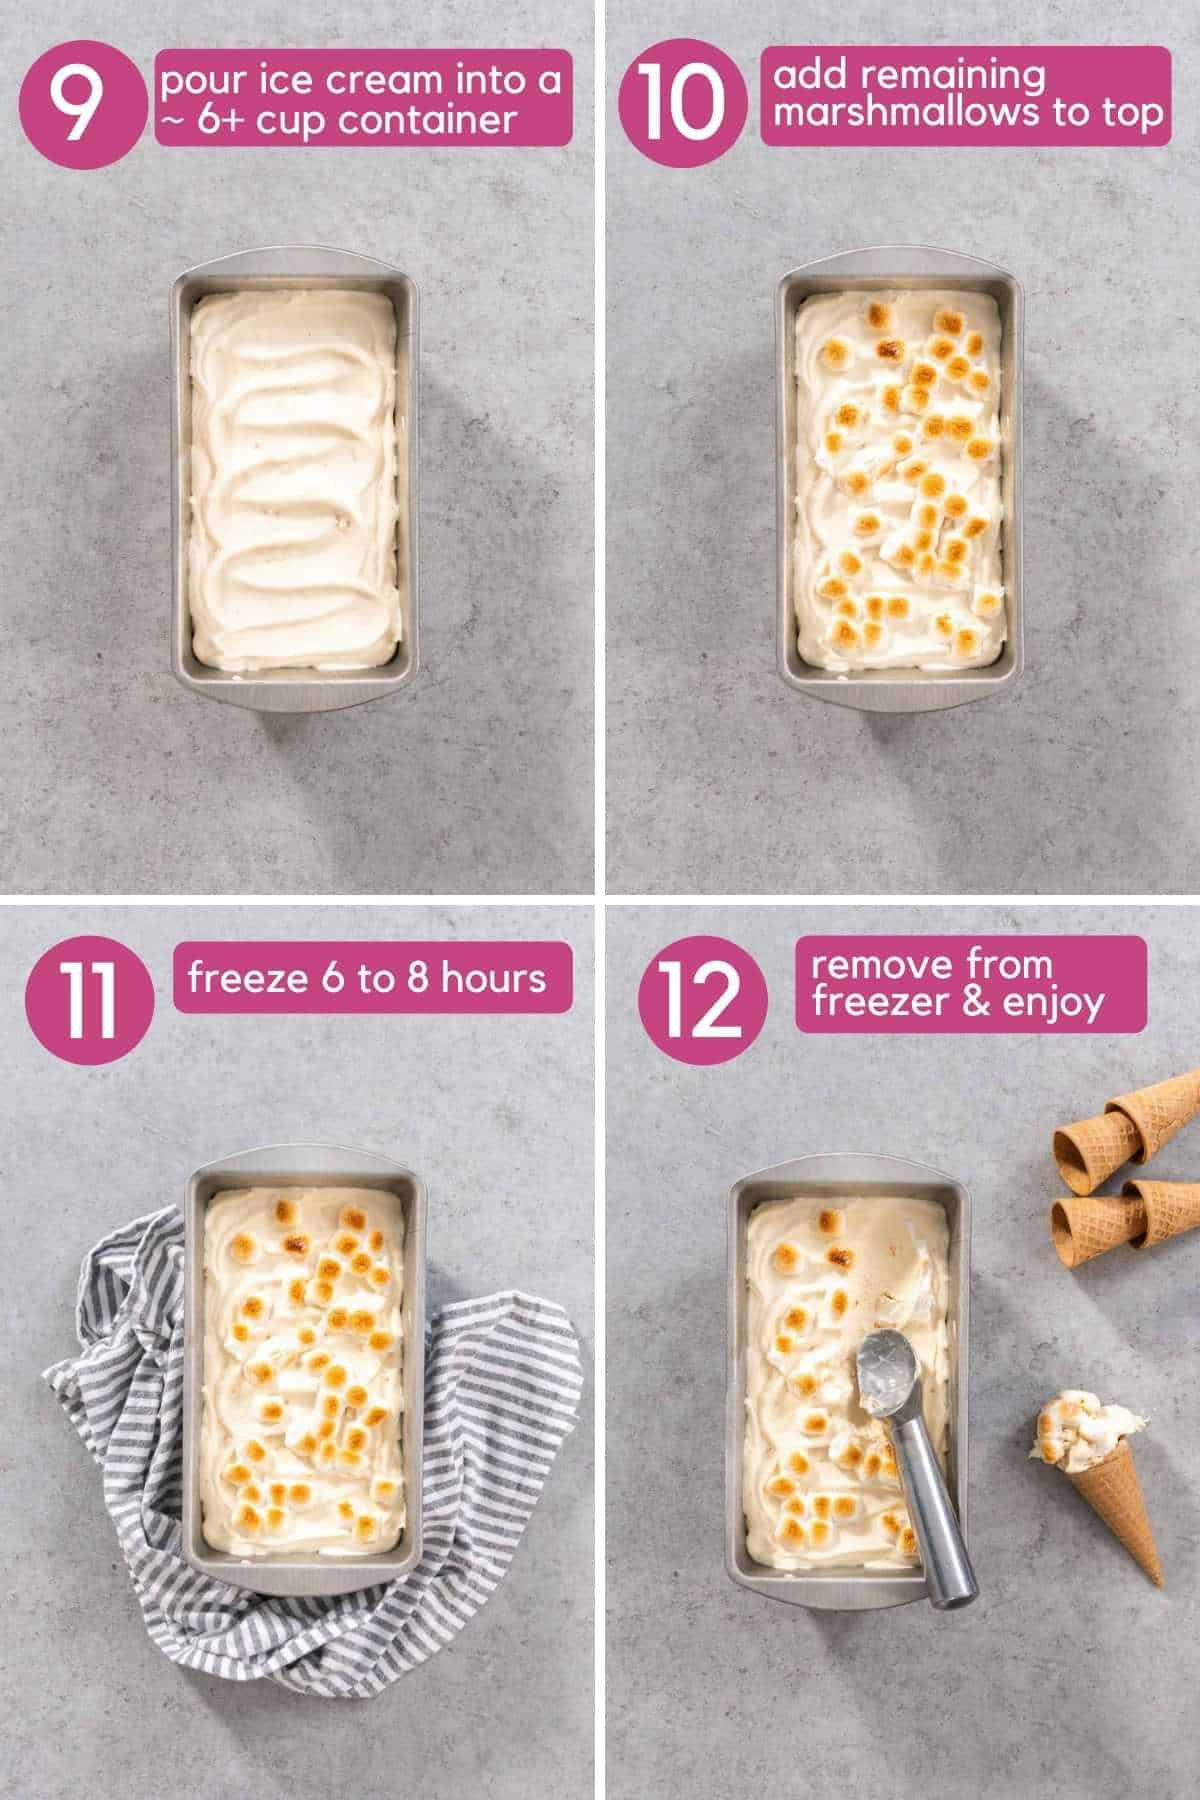 add additional marshmallows to ice cream and freeze.